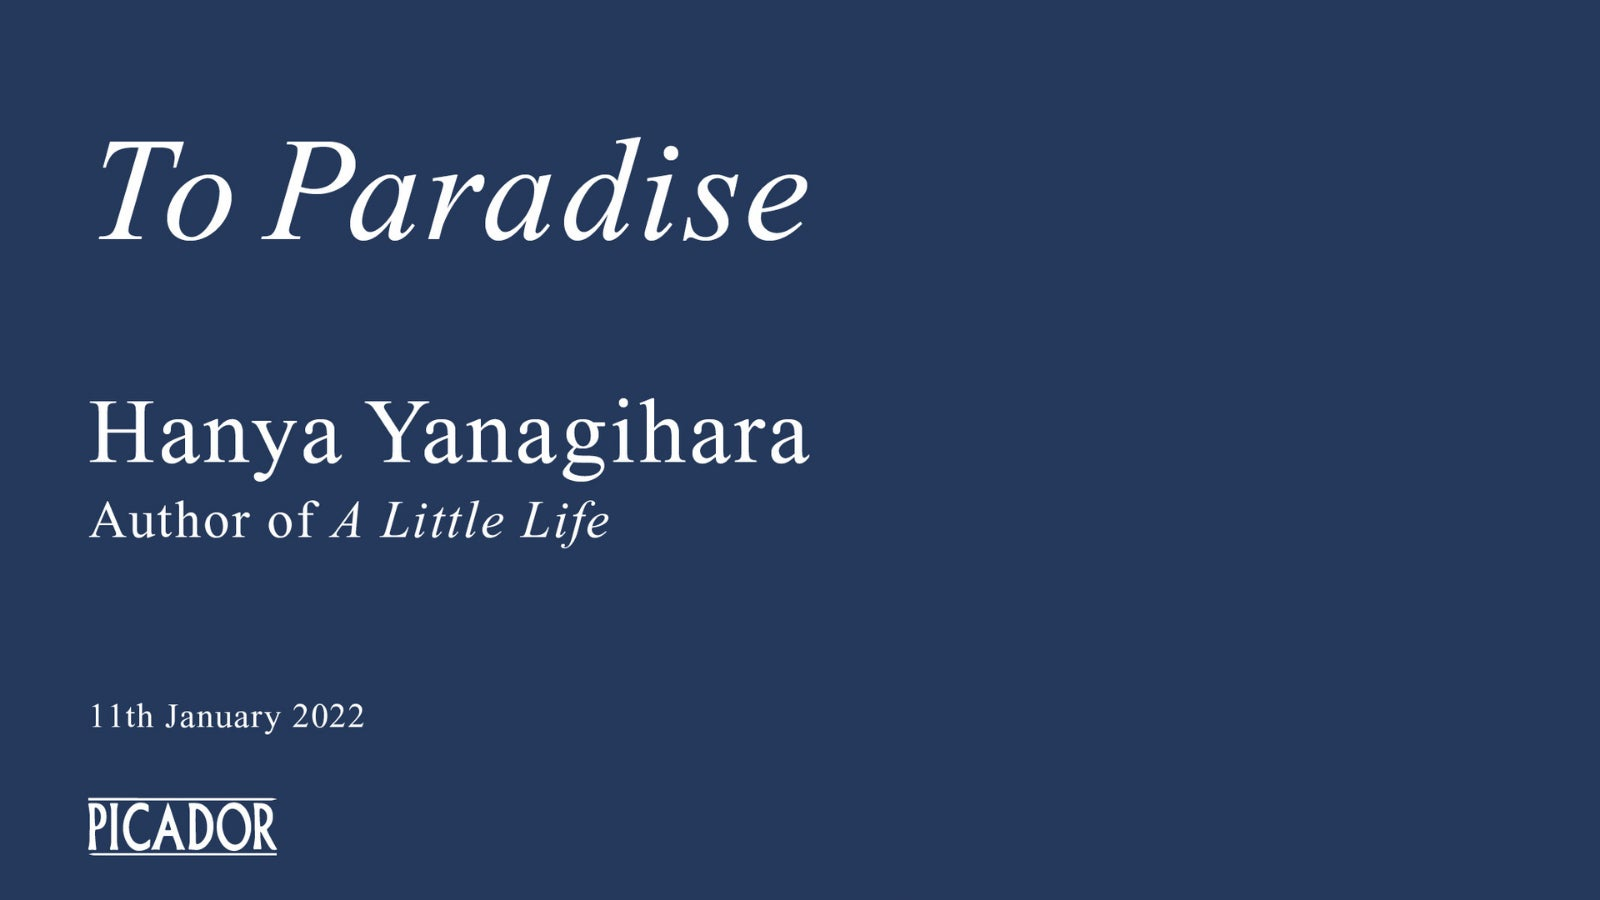 The following words, sitting on a blue background: To Paradise, Hanya Yanagihara, Author of A Little Life, 11th January 2022, PICADOR